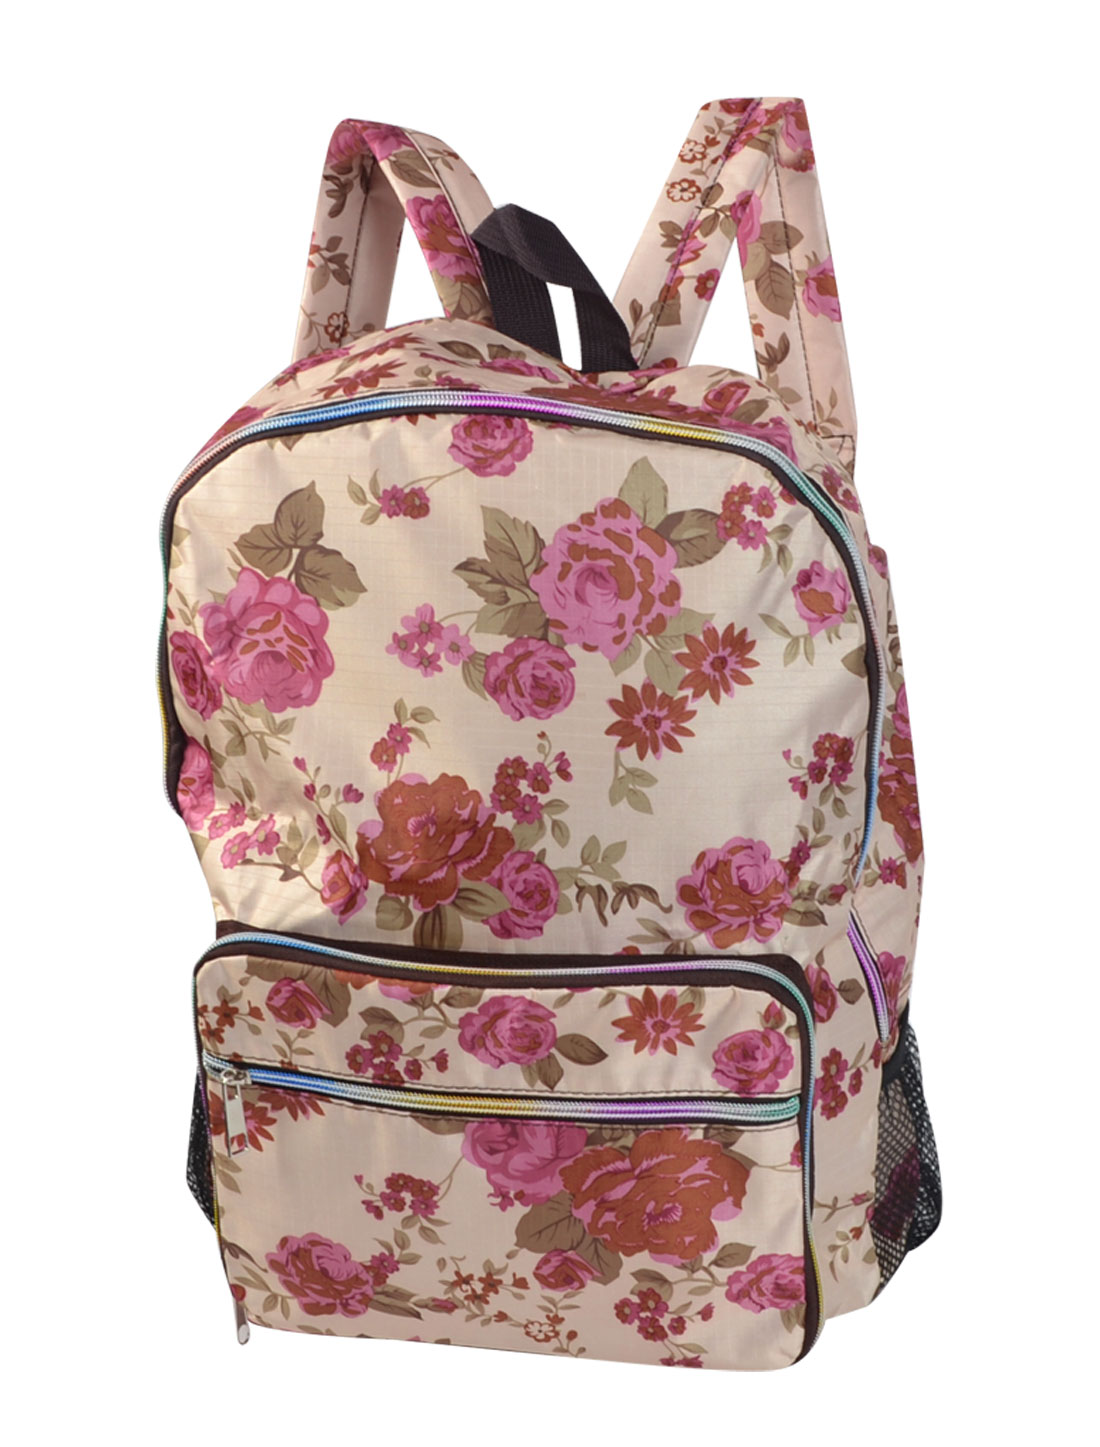 School Travel Flower Printed Foldable Zip Up Phone Pouch Double Shoulder Backpack Packbag Bookbag Pocket